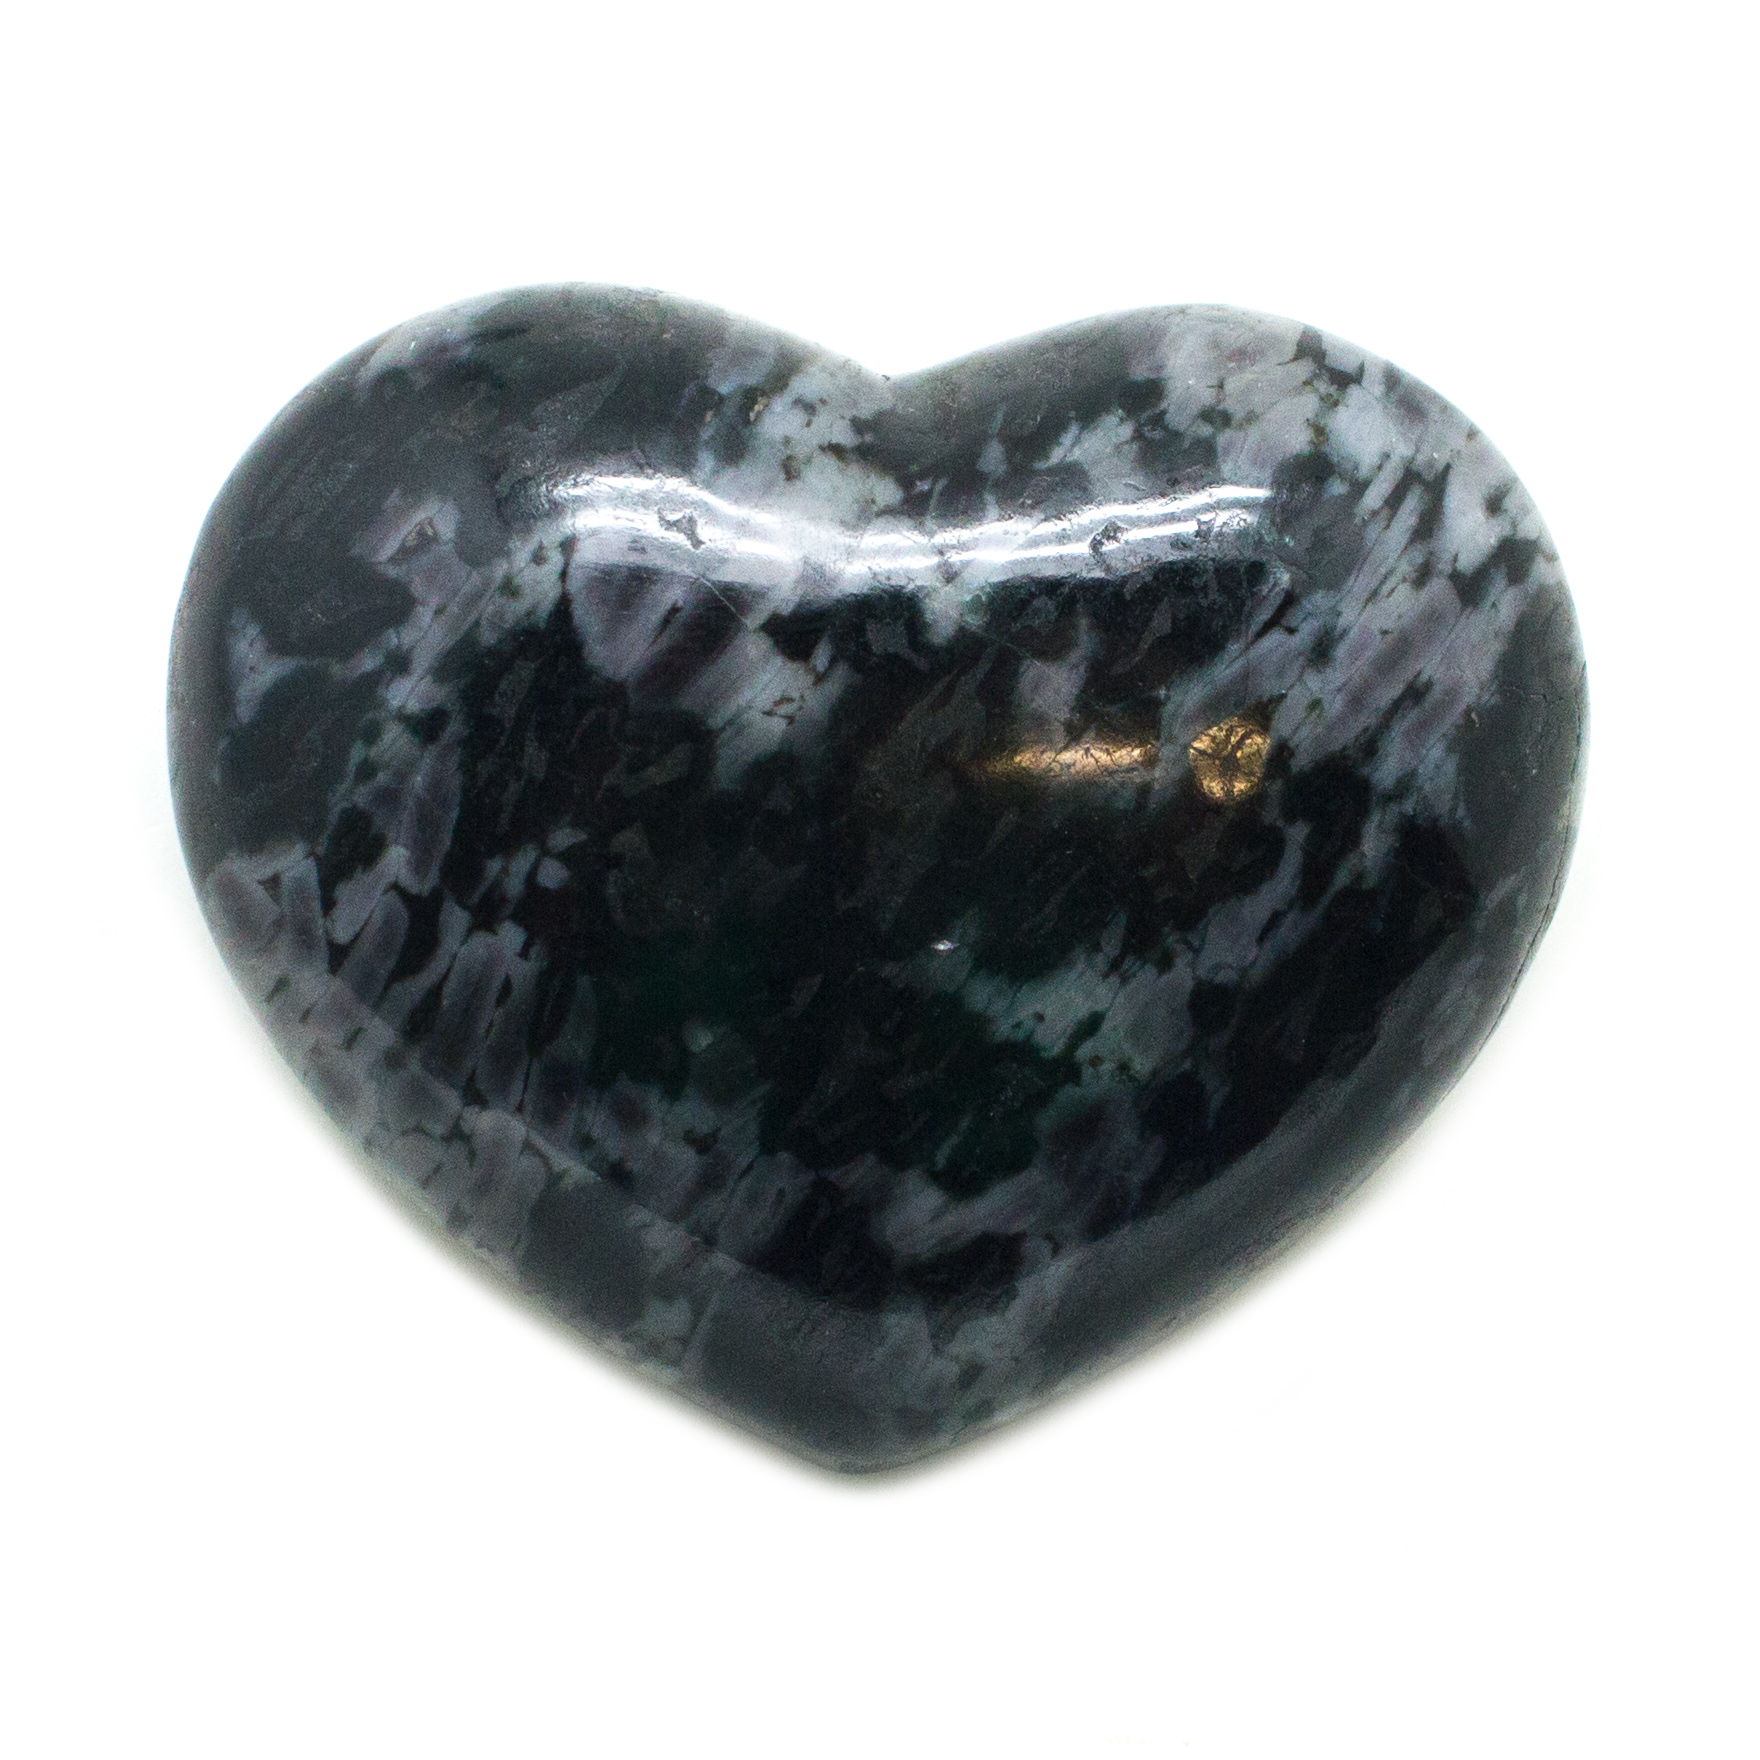 12 heart pendants Stones come from the world Heart from around the world FREE SHIPPING decorative Gift bag included